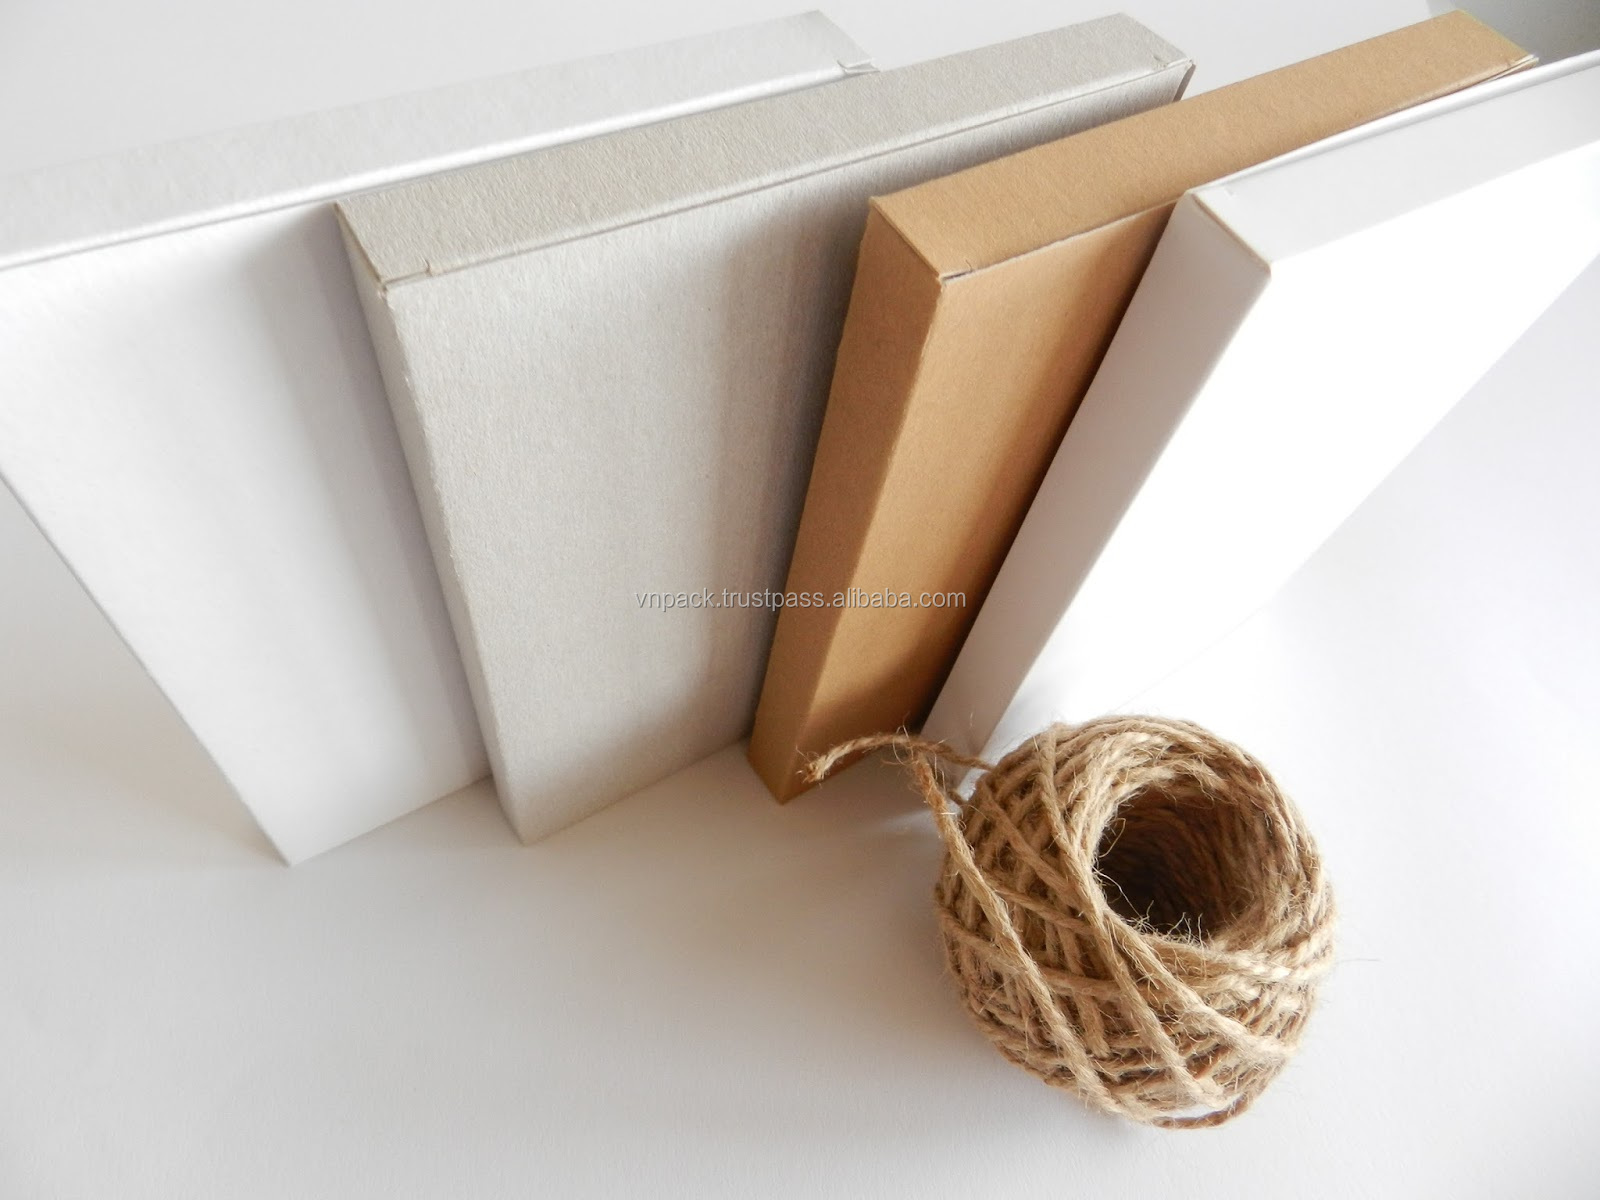 FRAME PACKAGING PAPER BOX